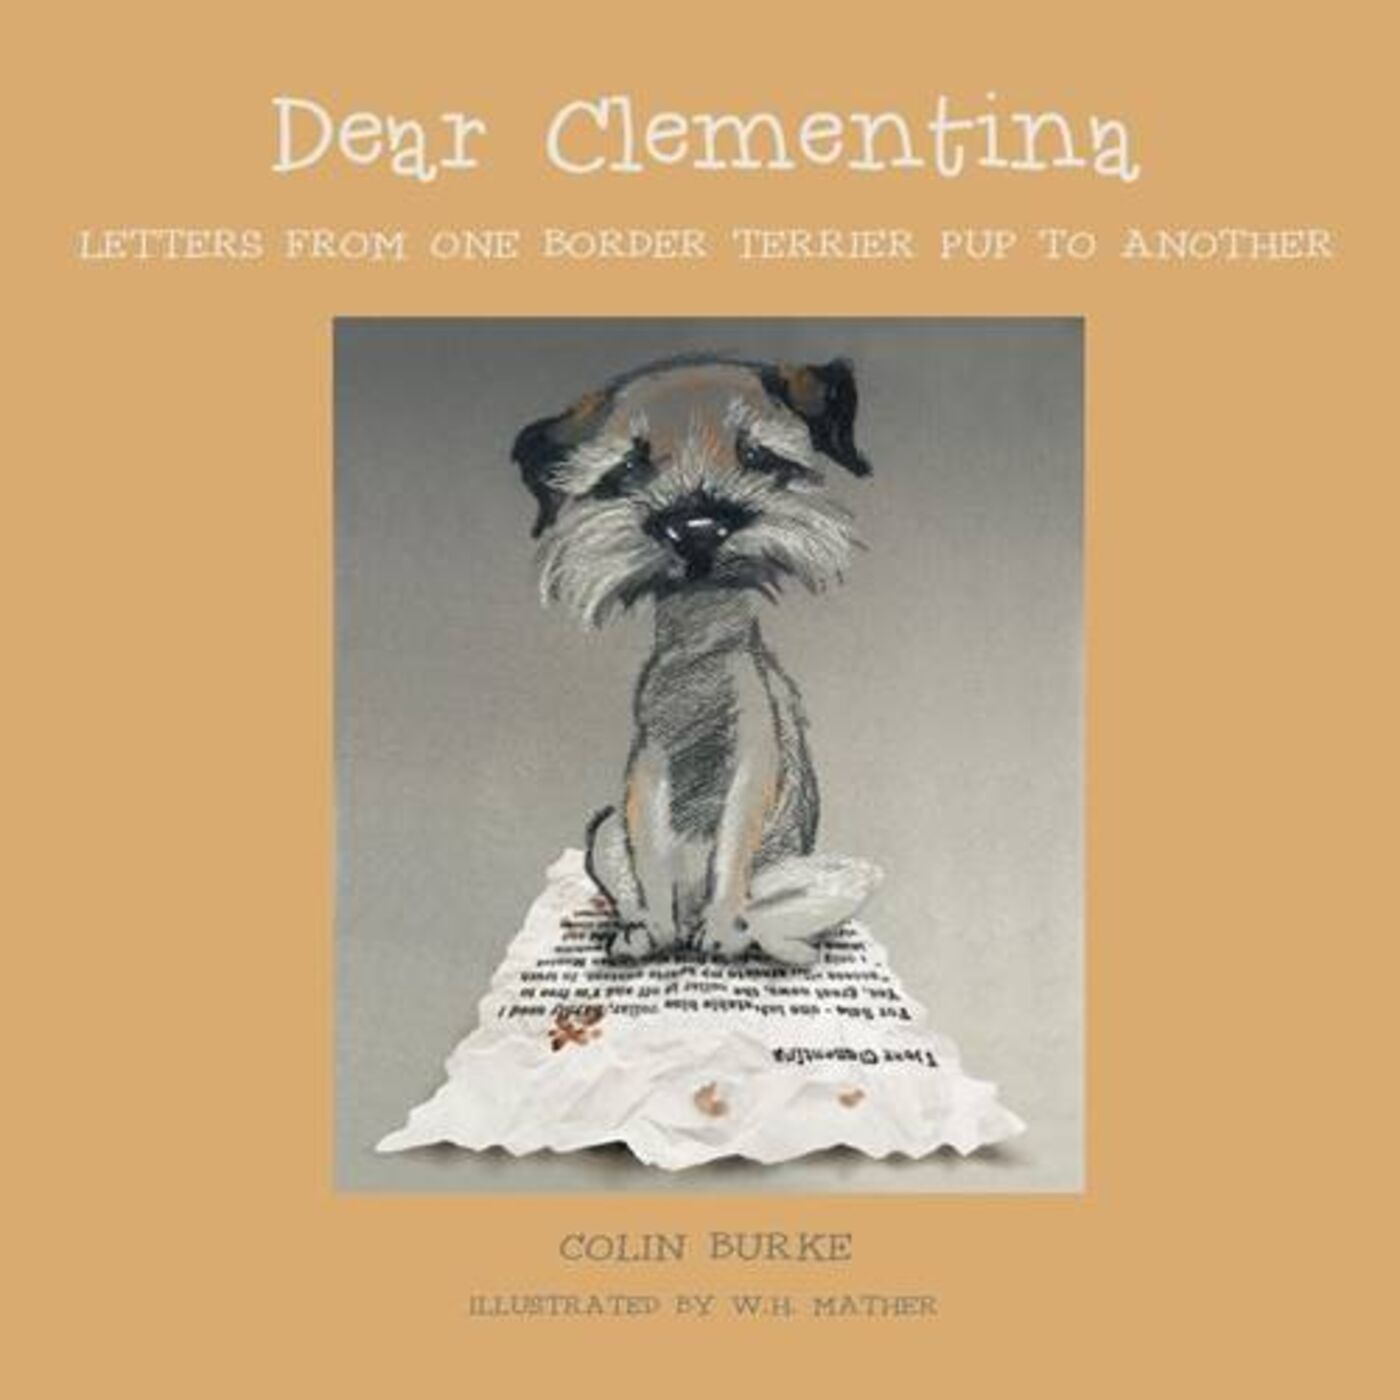 """Dear Clementina Chapter 3 - """"Squashed Croissants Anyone?"""""""